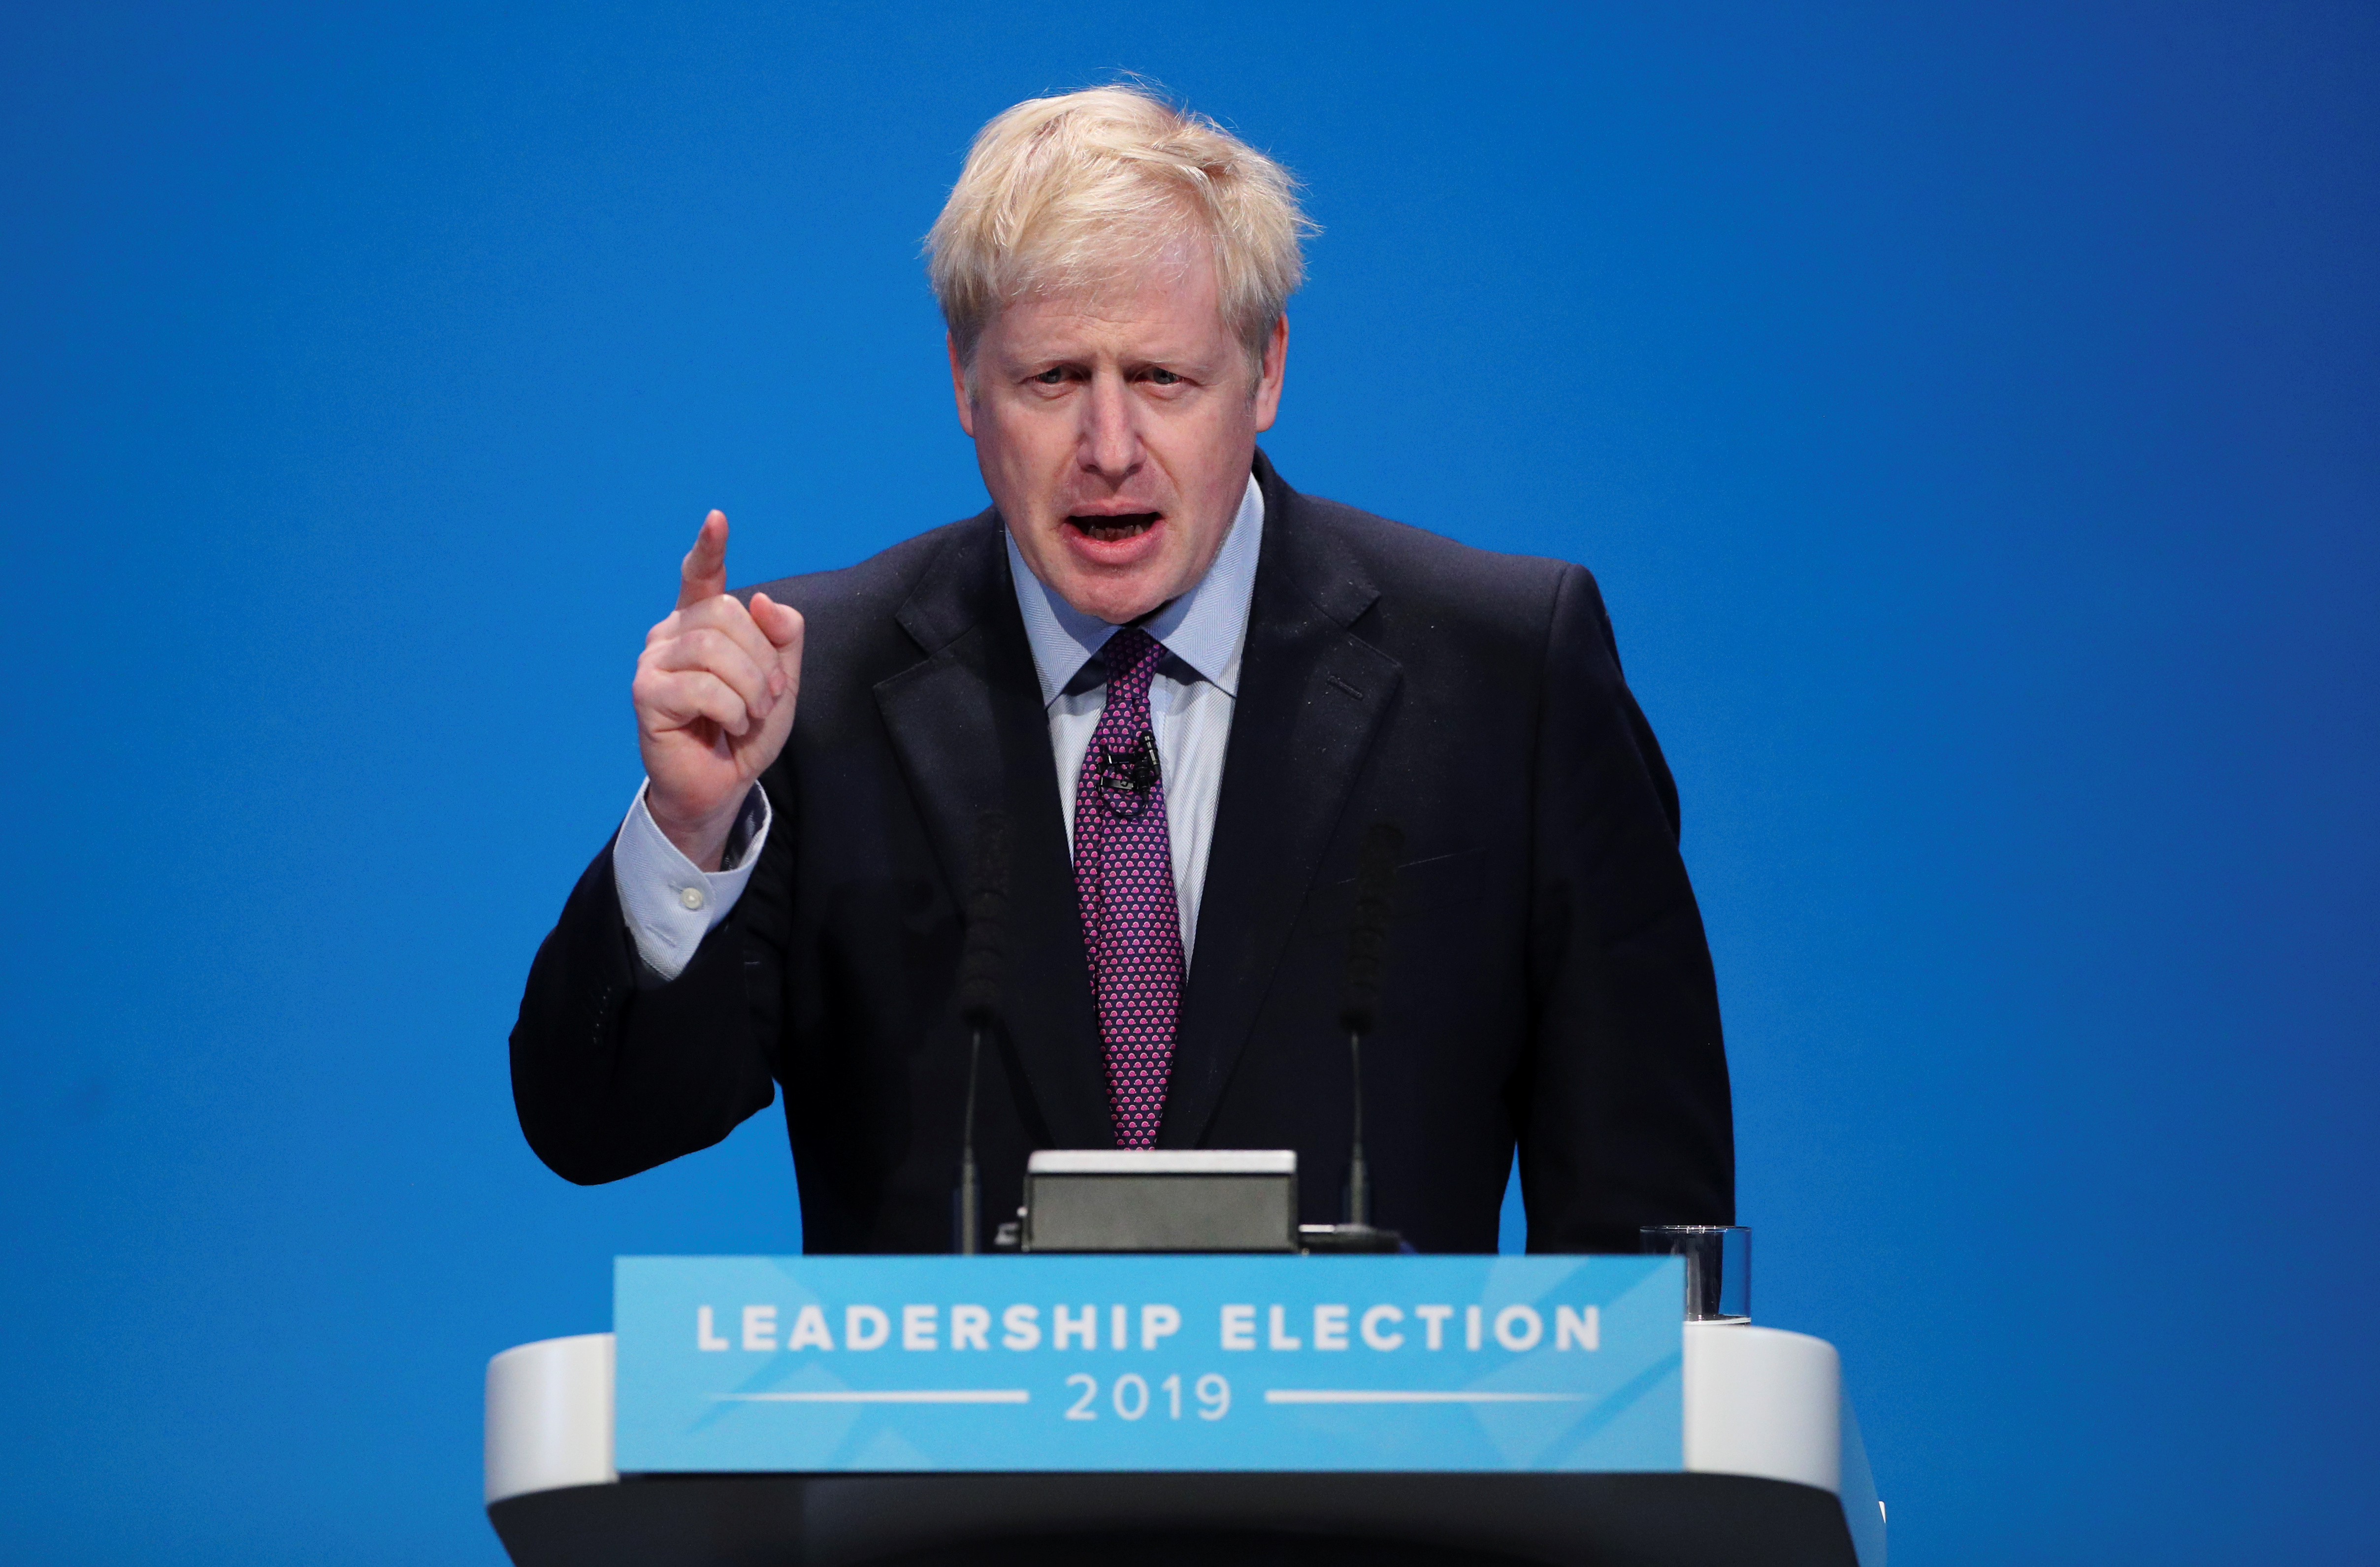 Boris Johnson, a leadership candidate for Britain's Conservative Party, talks during a hustings event in Birmingham, Britain, June 22, 2019. REUTERS/Hannah McKay